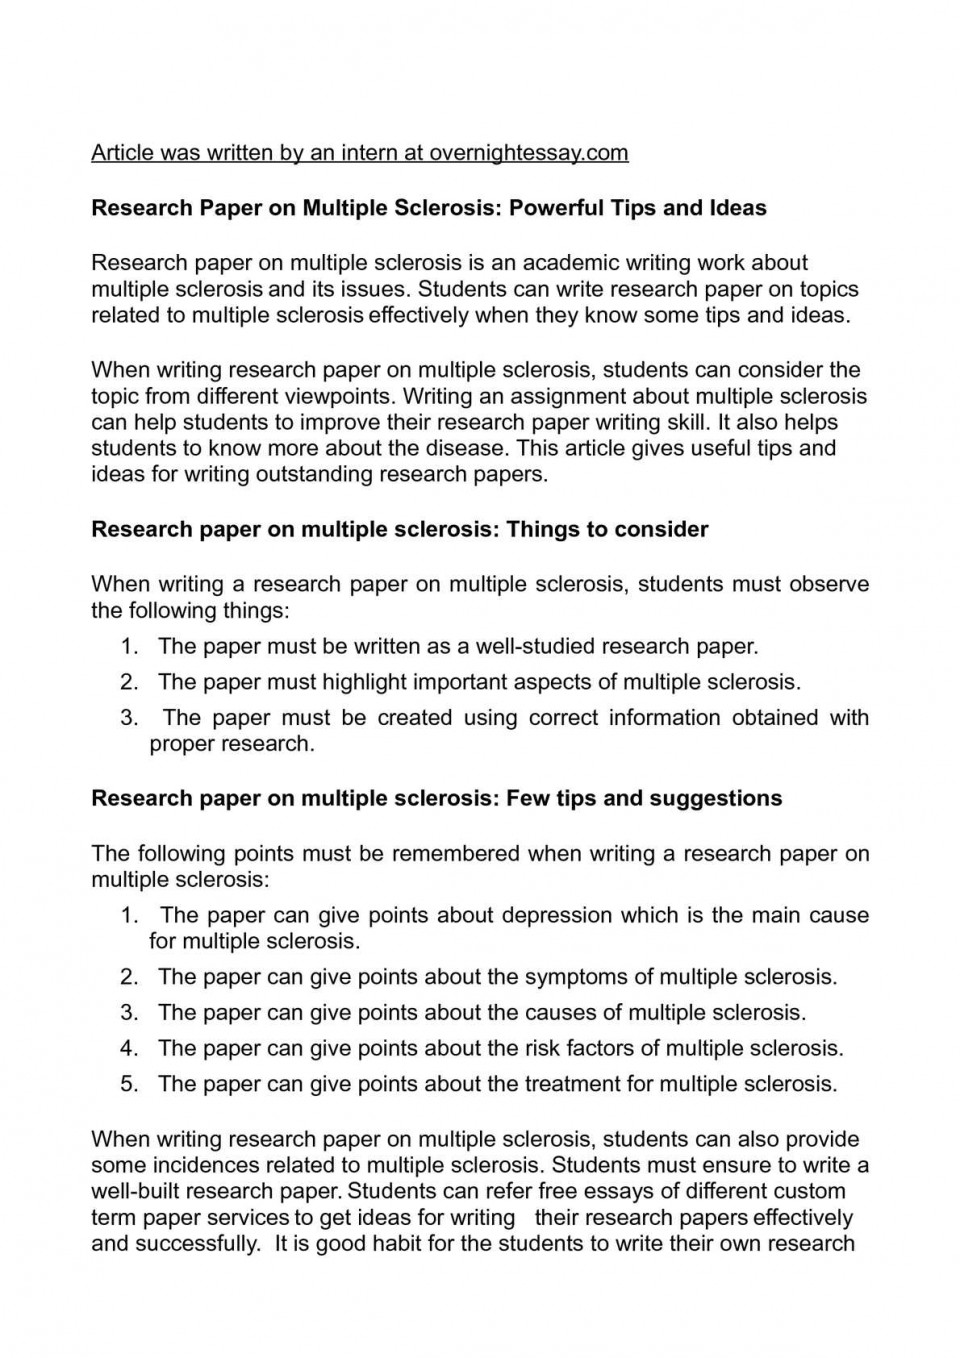 015 P1 Research Paper Write Frightening Papers How To A History Introduction Fast Youtube For Money 960